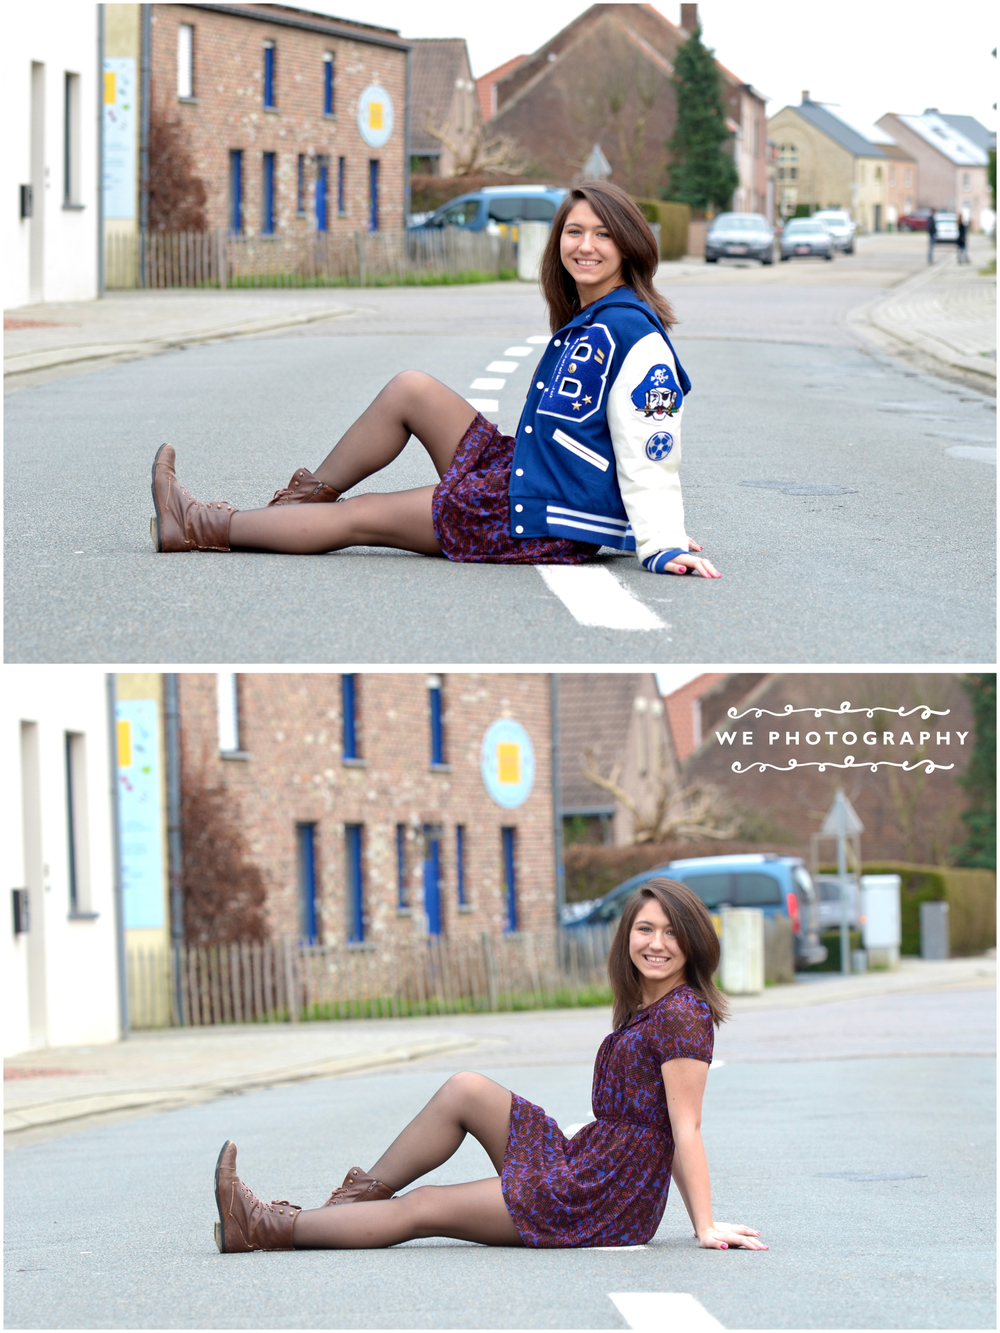 201401_PaigeBrowncollage4.jpg